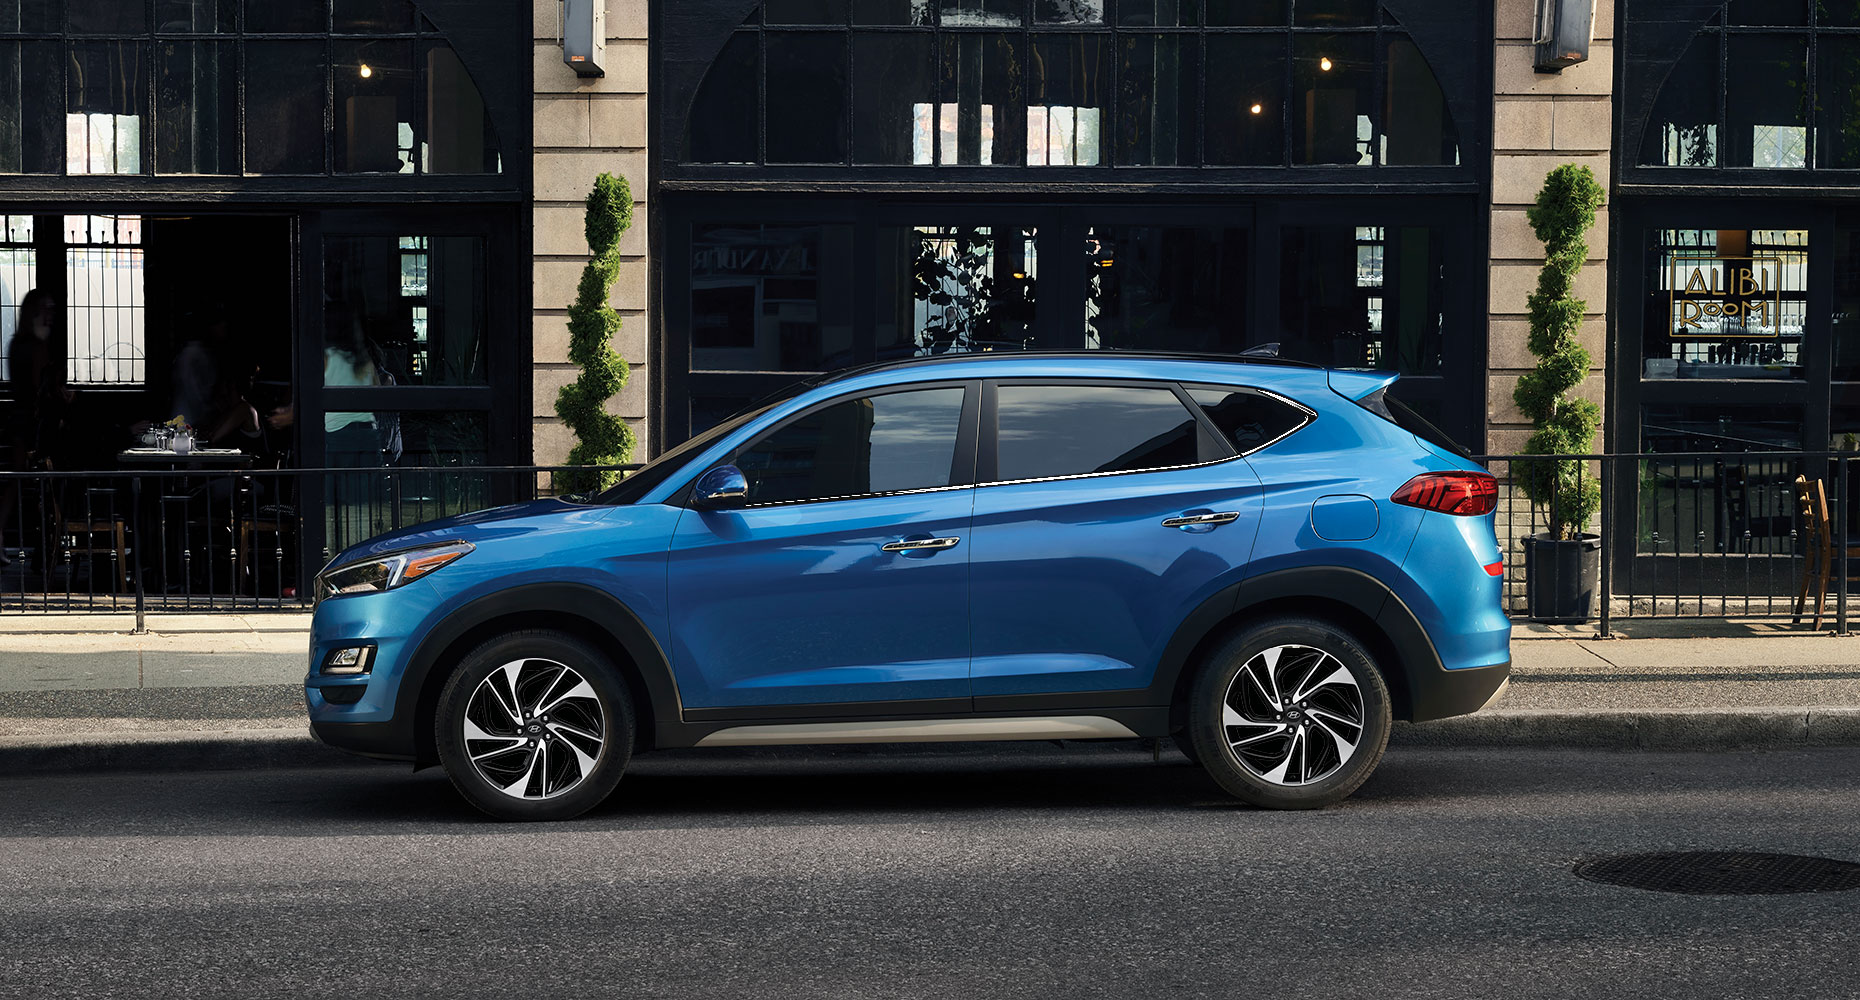 Tucson 2019 | More than just a Sport Utility Vehicle